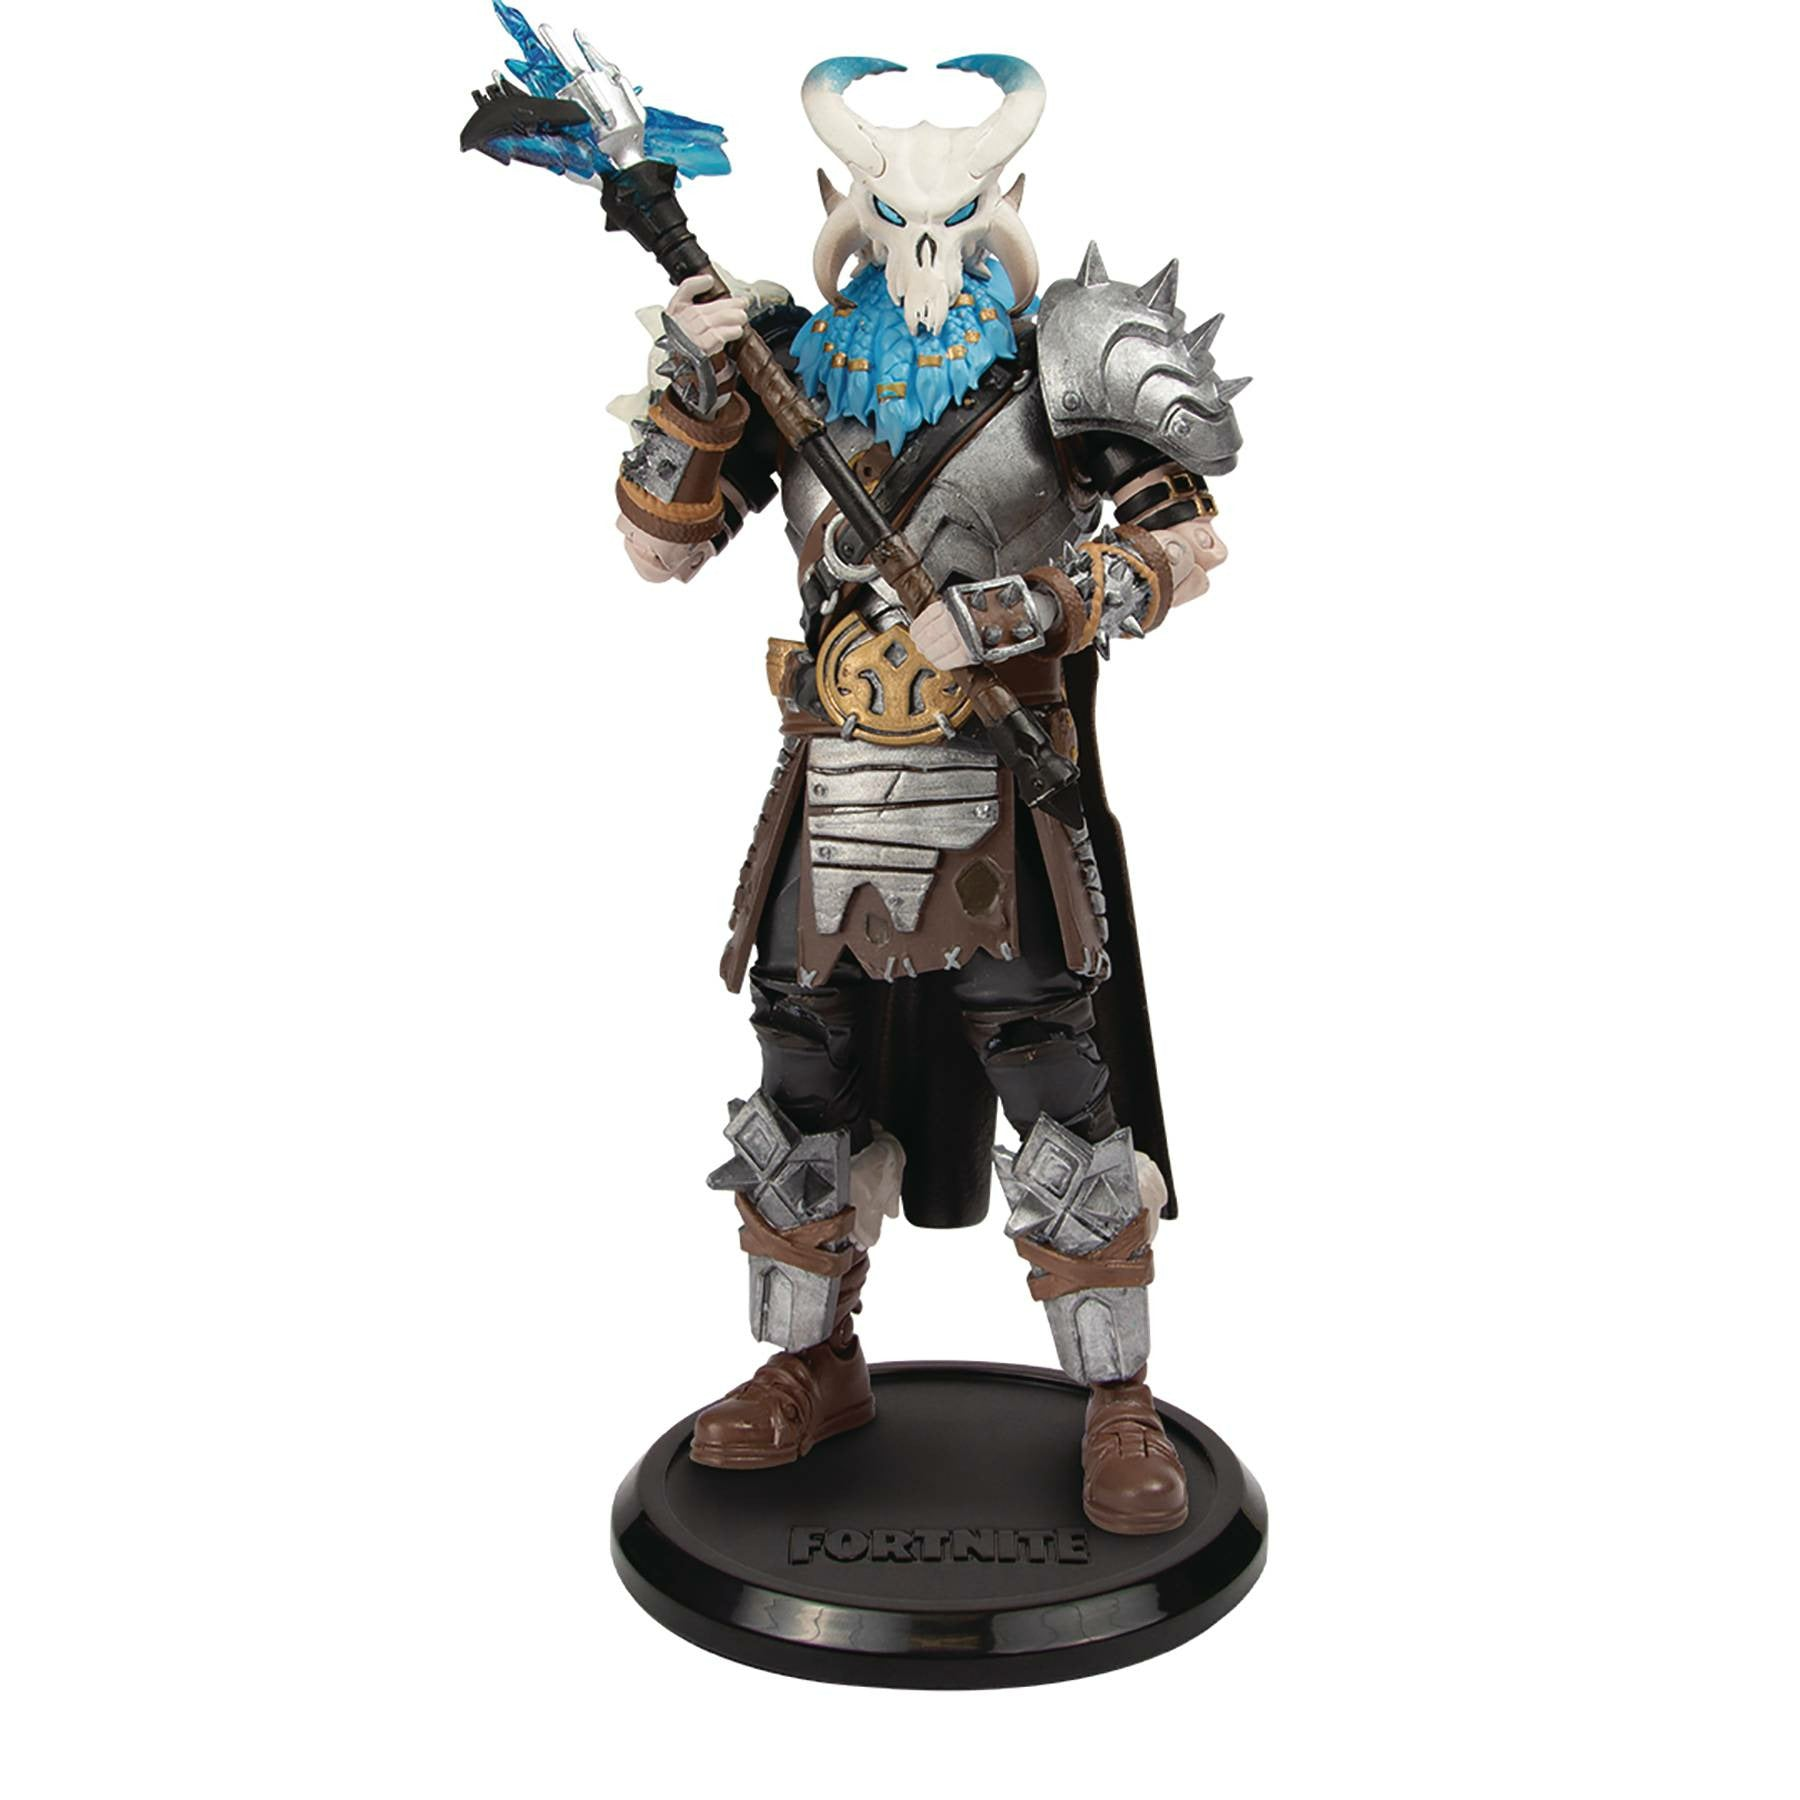 Fortnite Ragnarok 7 inch Premium Action Figure